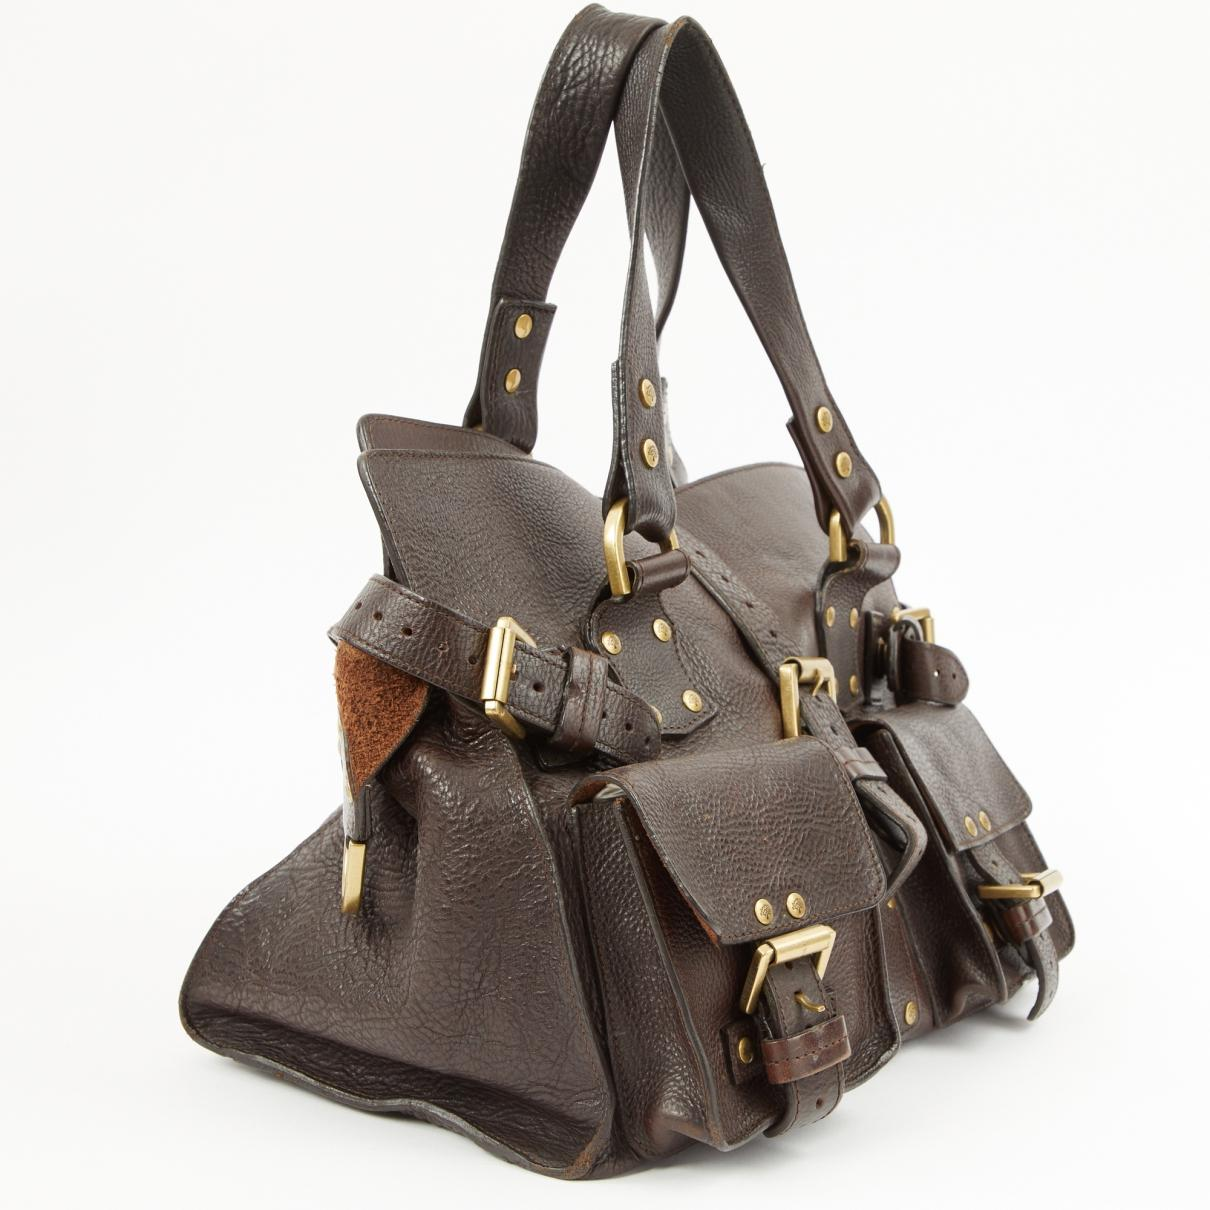 2bbea5d3ca50 Mulberry - Roxanne Brown Leather Handbag - Lyst. View fullscreen